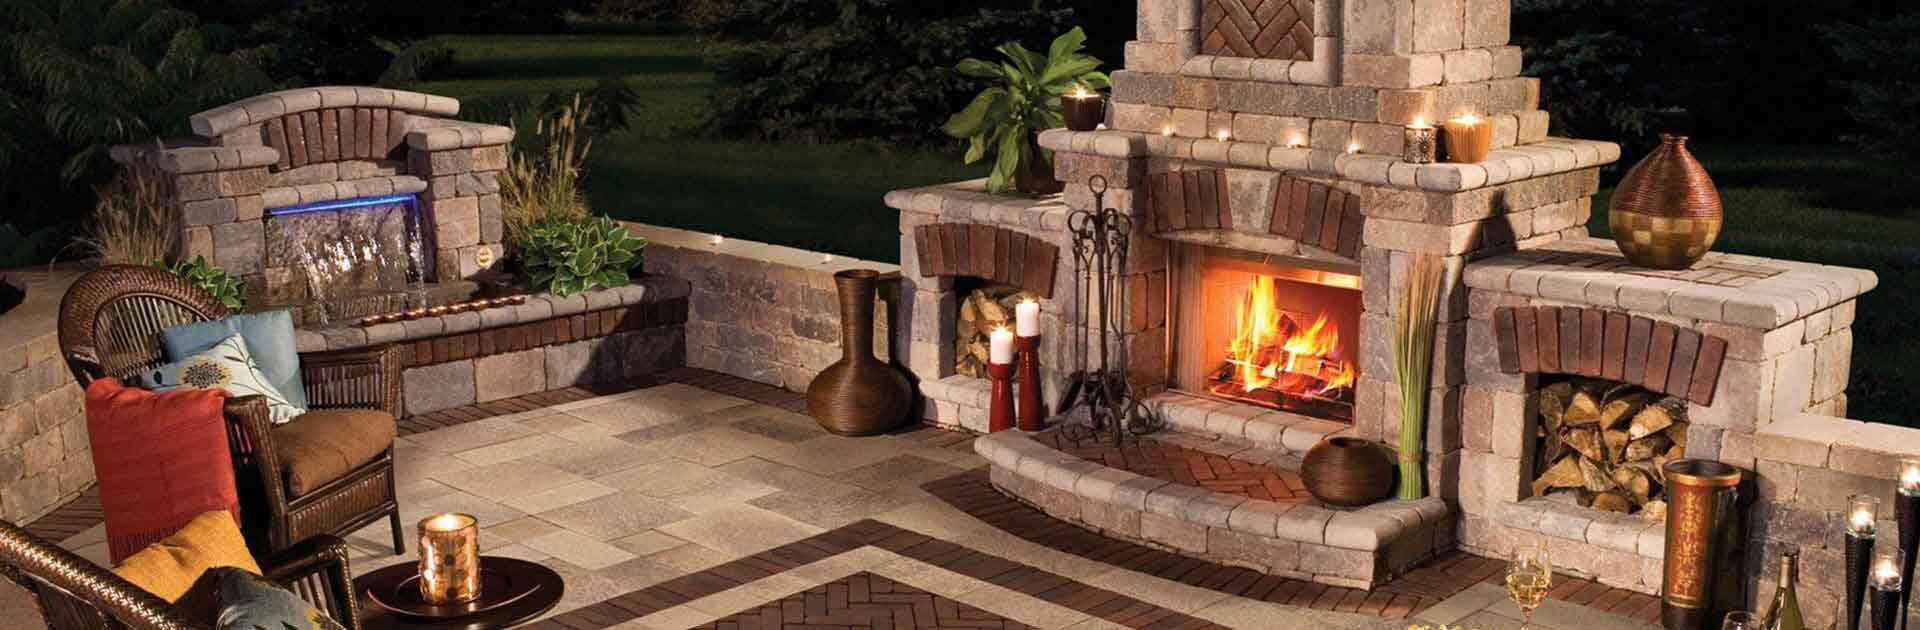 Hardscaping Custom Outdoor Fireplace